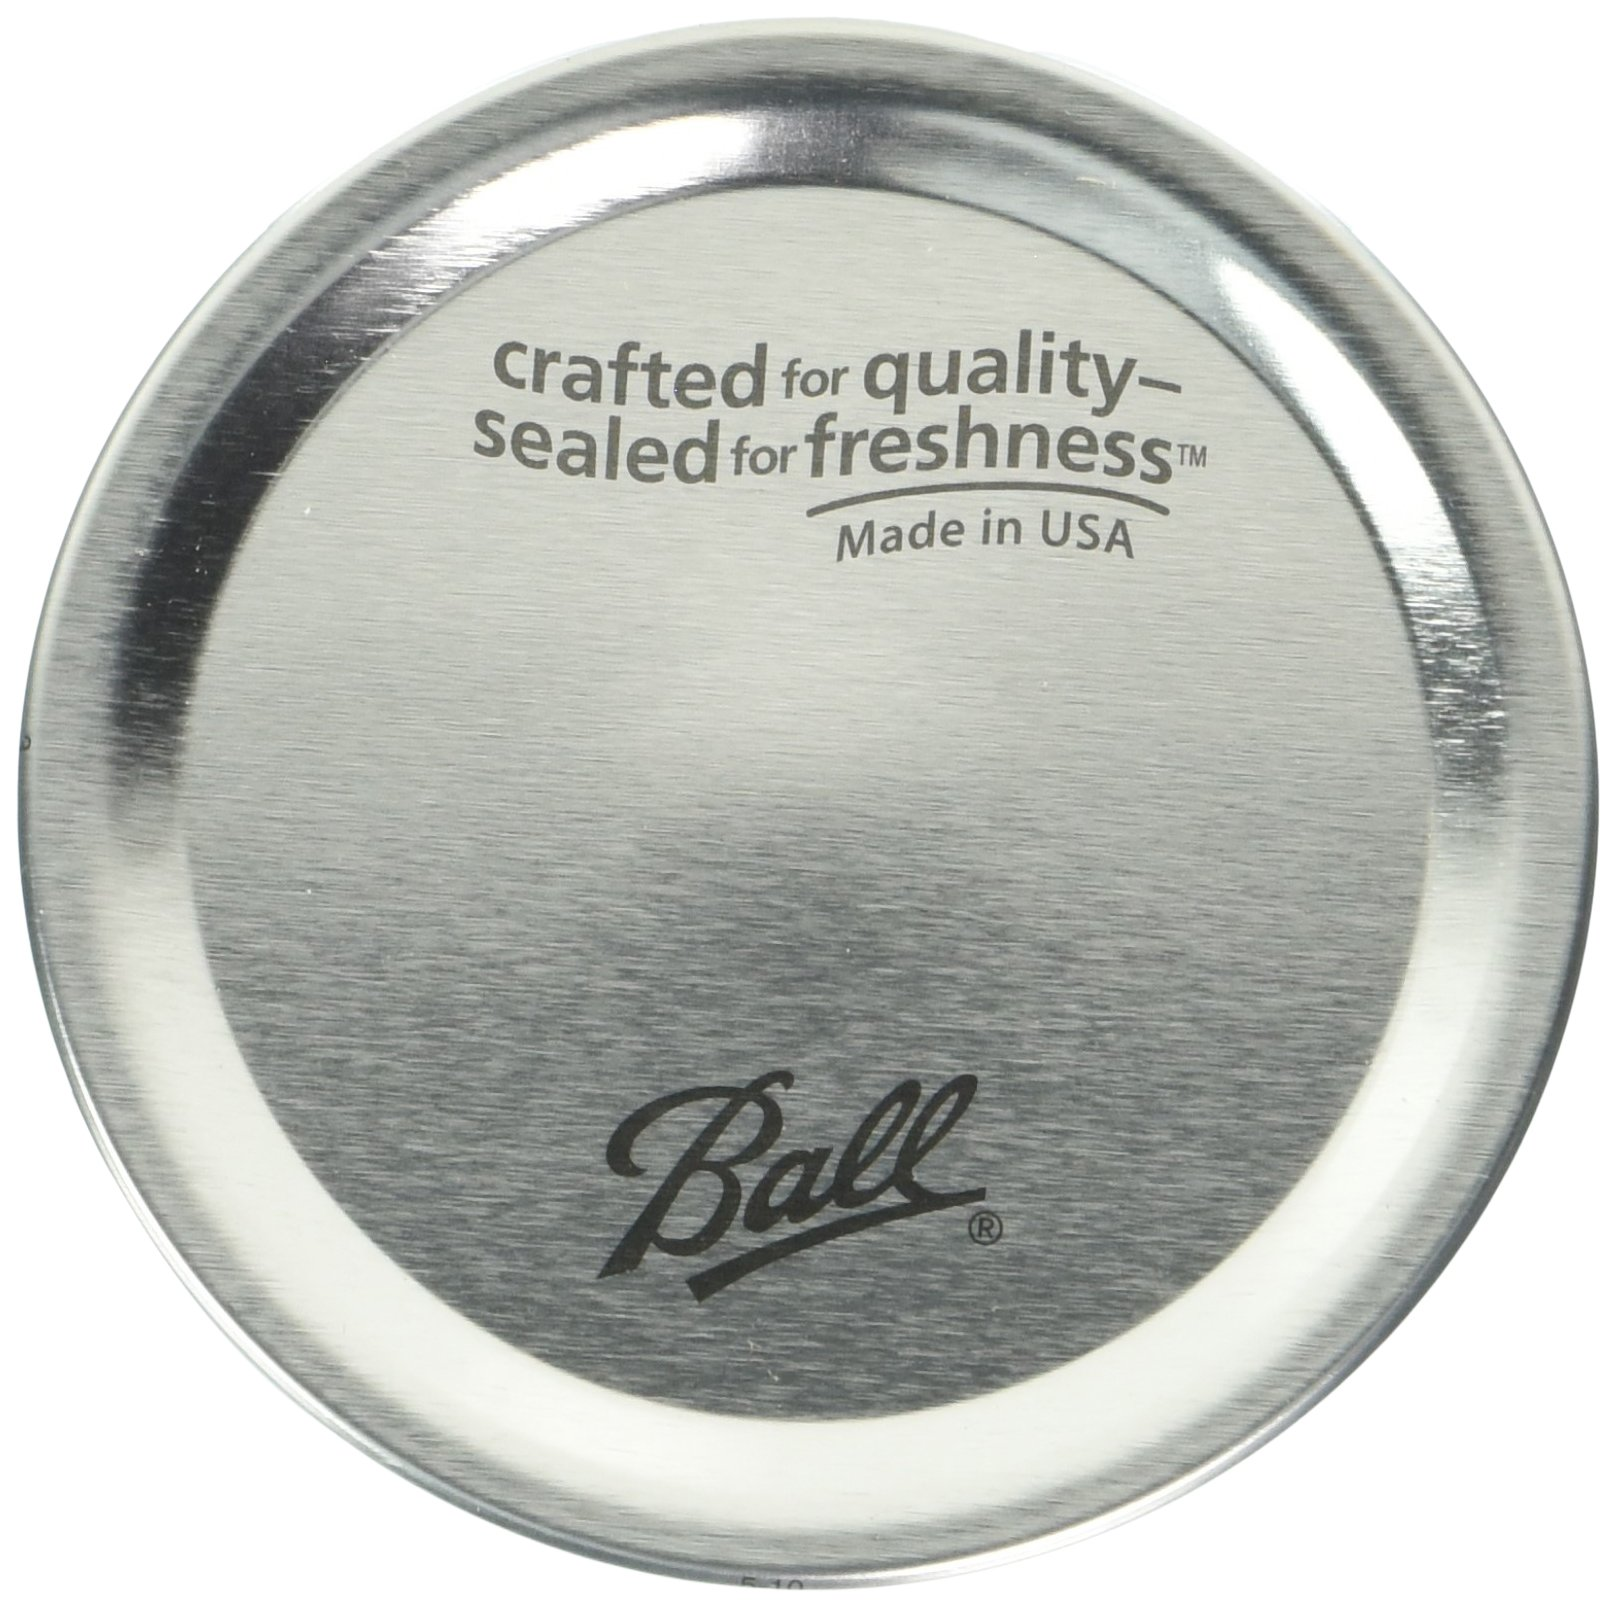 Ball Wide Mouth Canning Lids 4 Dozen or 48 Lids Total